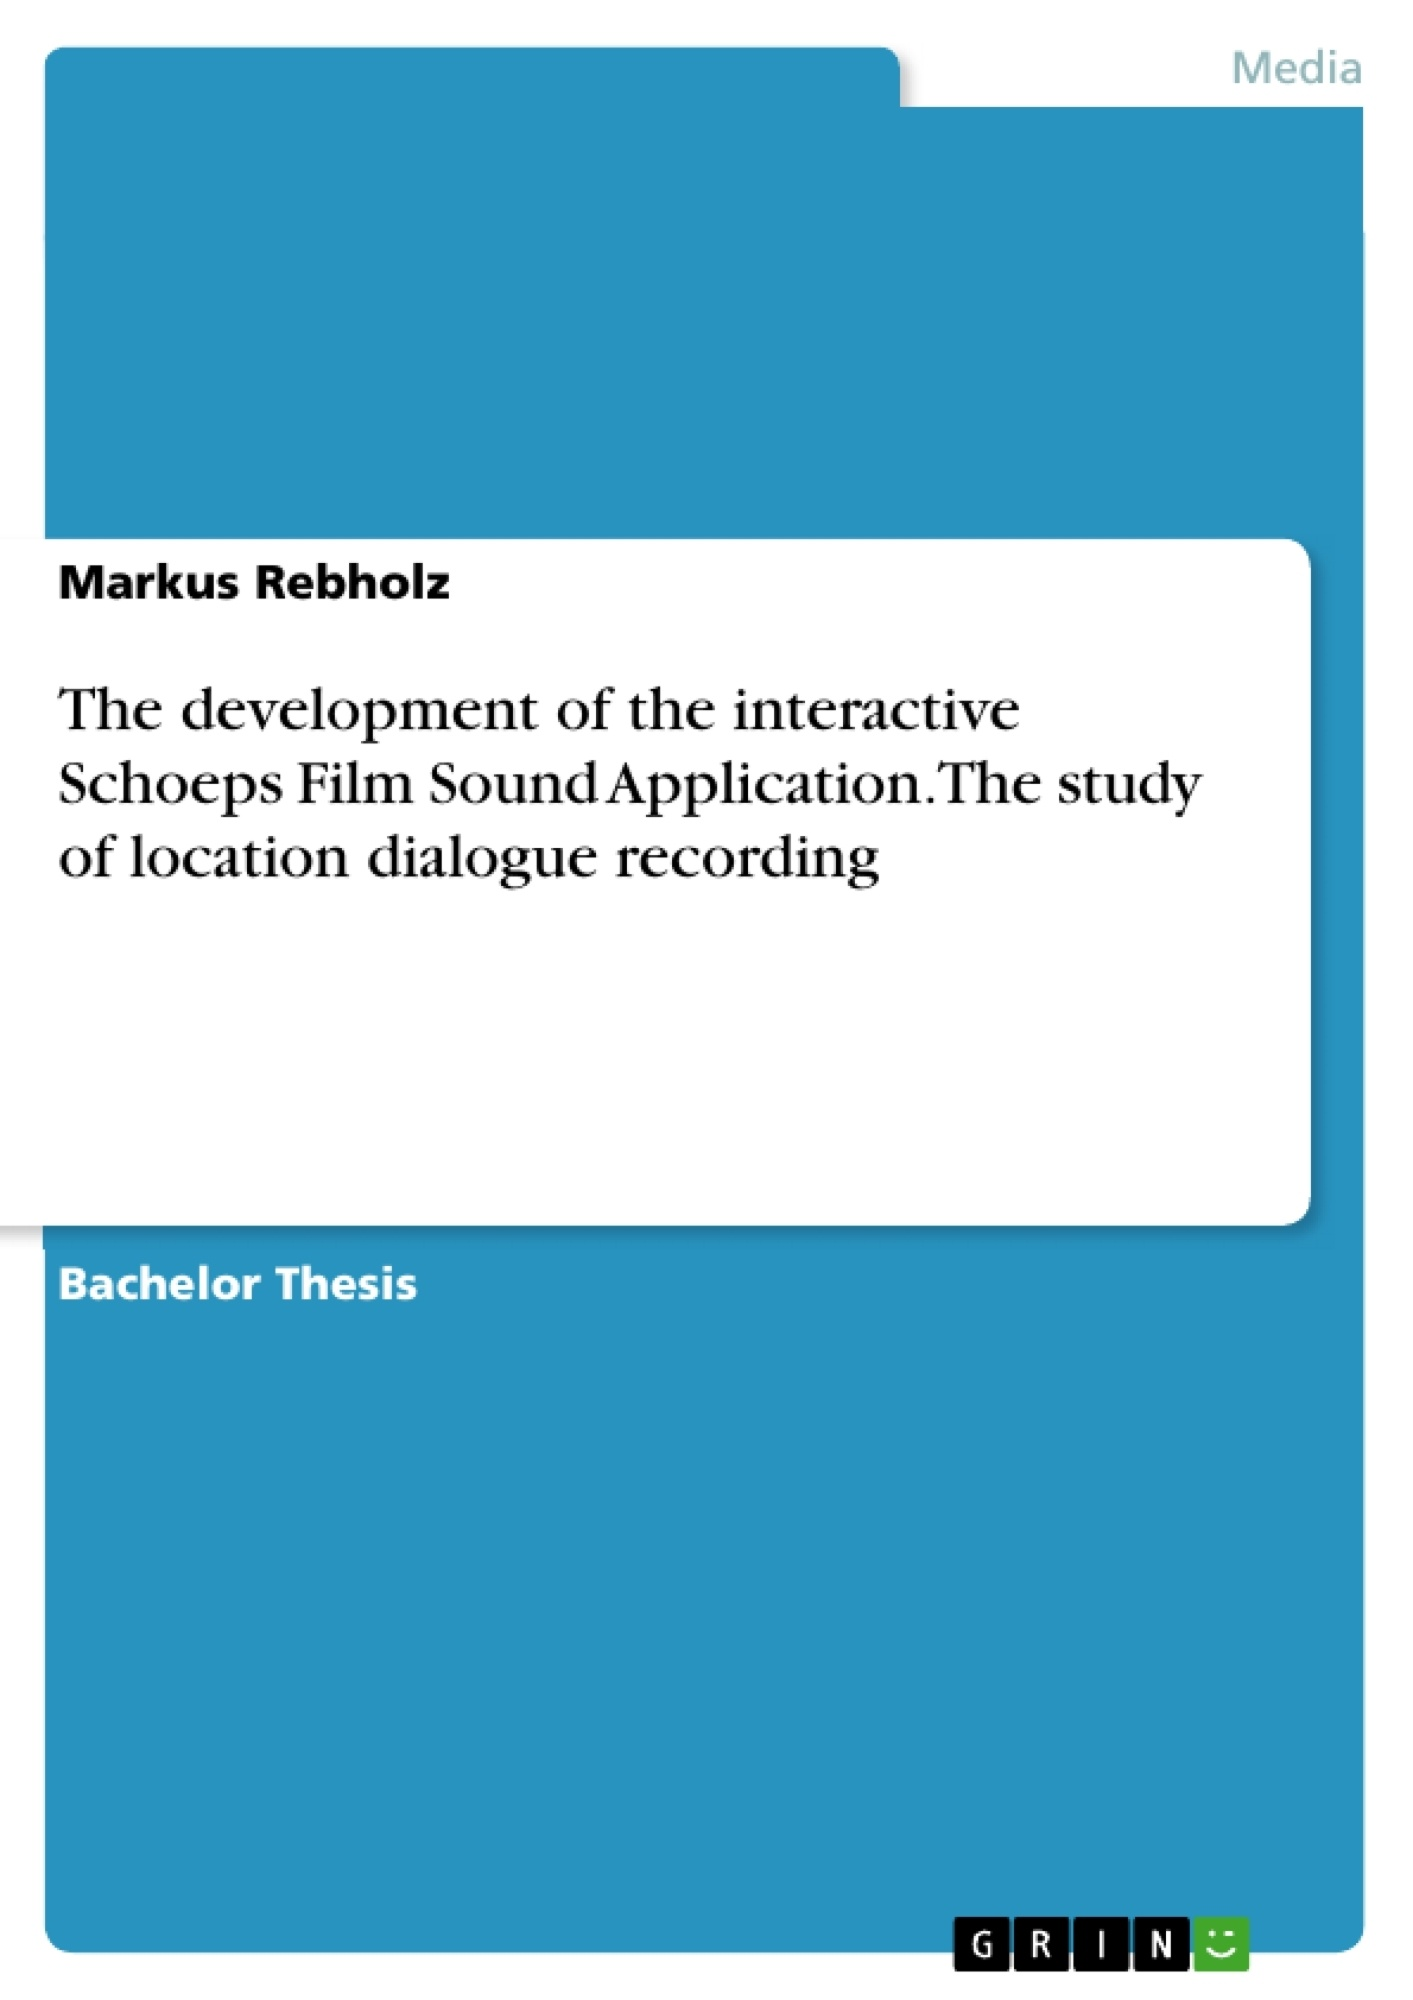 Title: The development of the interactive Schoeps Film Sound Application. The study of location dialogue recording